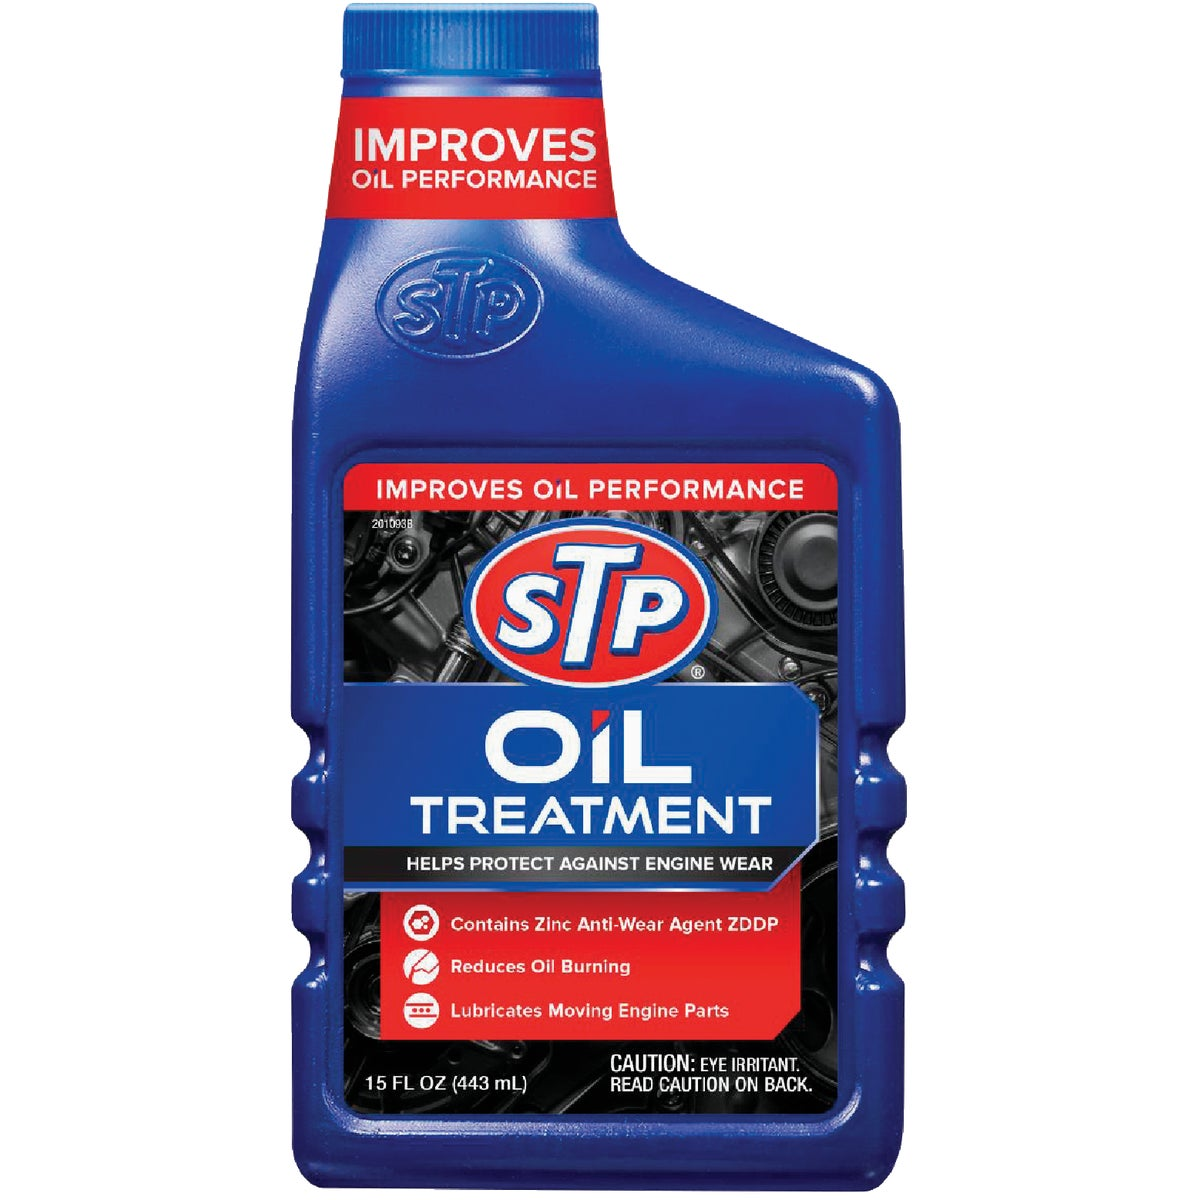 15OZ STP OIL TREATMENT - 66079 by Armored Autogroup